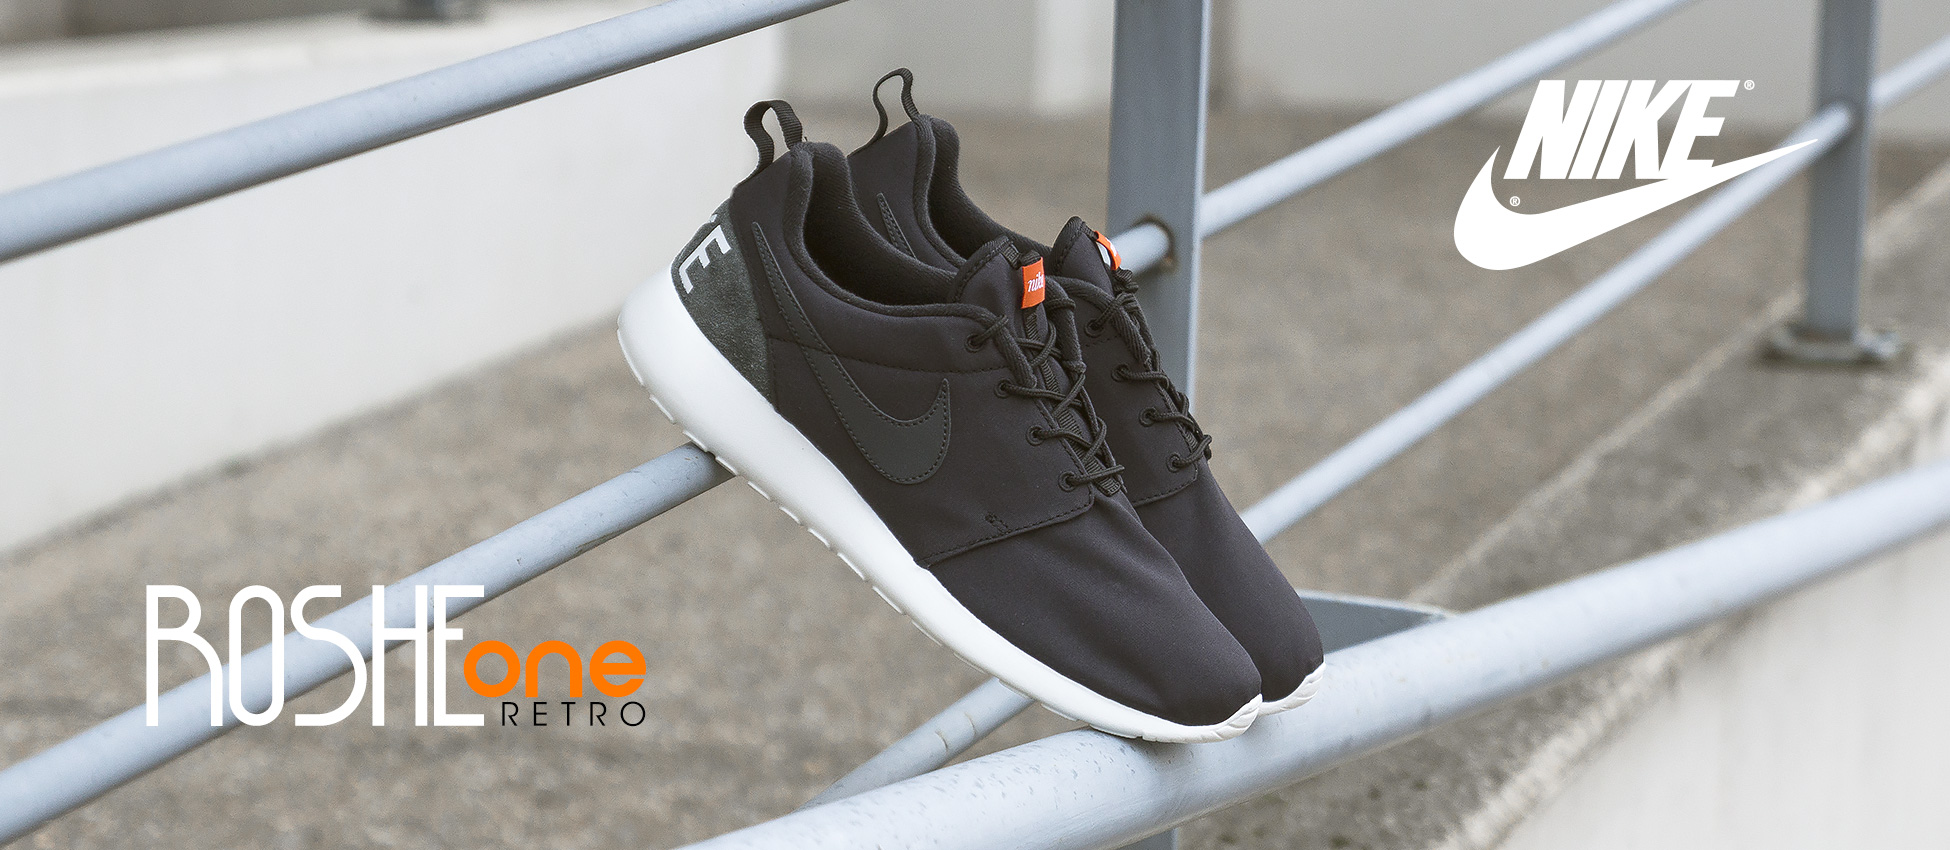 Nike Roshe One Retro Black-Anthracita